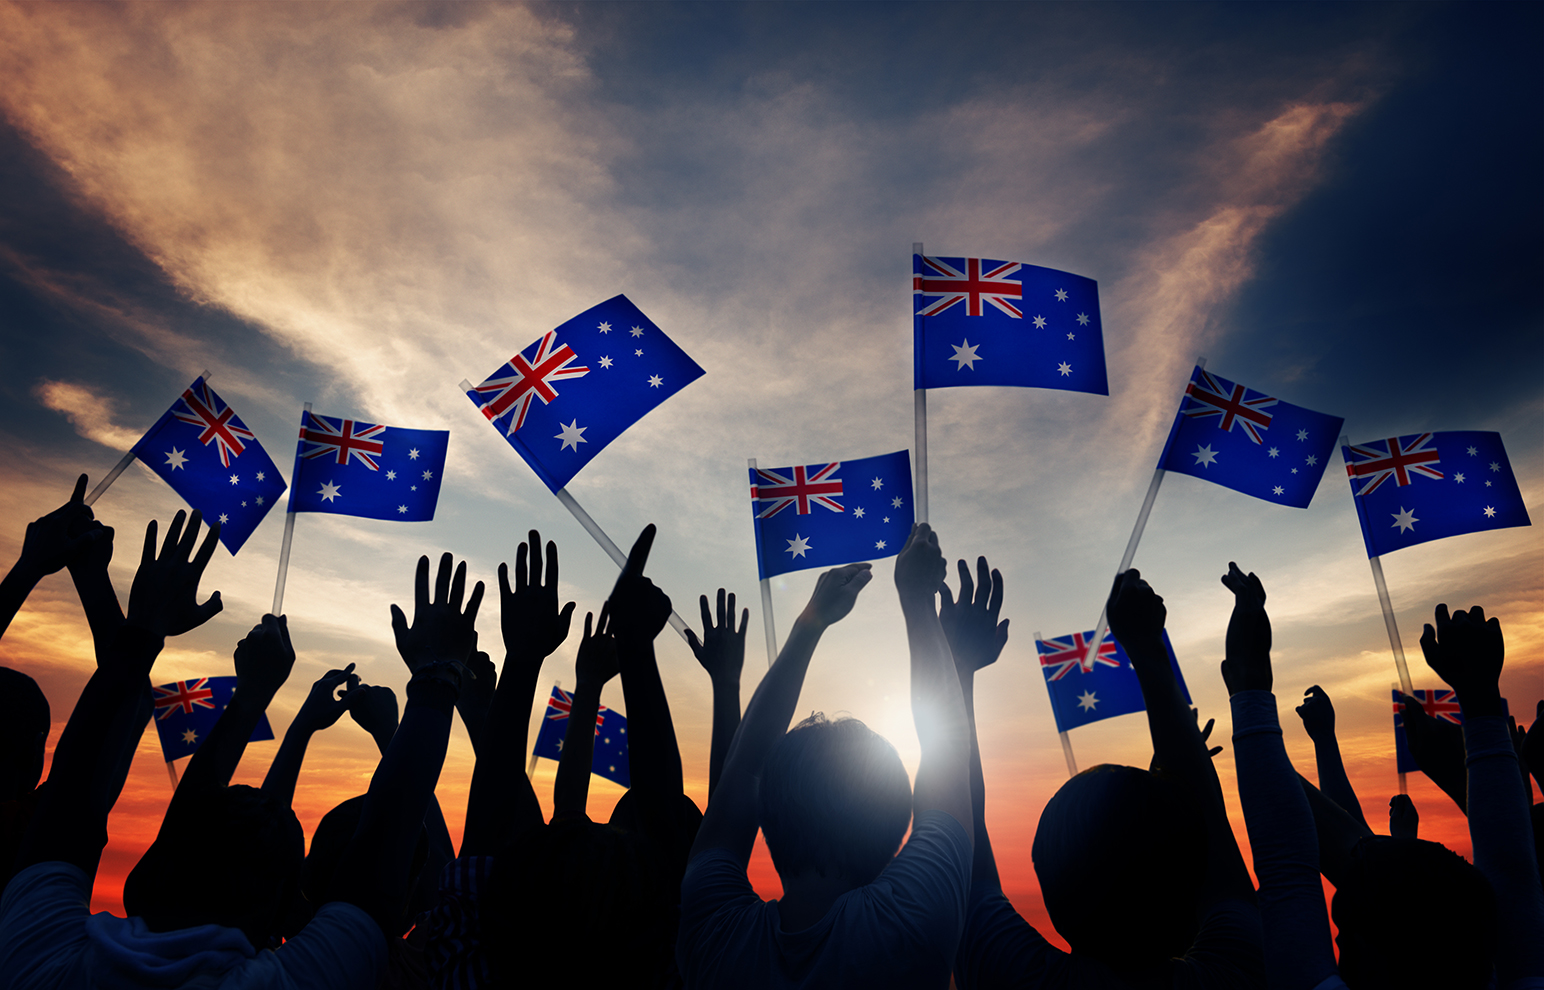 HQ Australia Day Wallpapers | File 873.5Kb